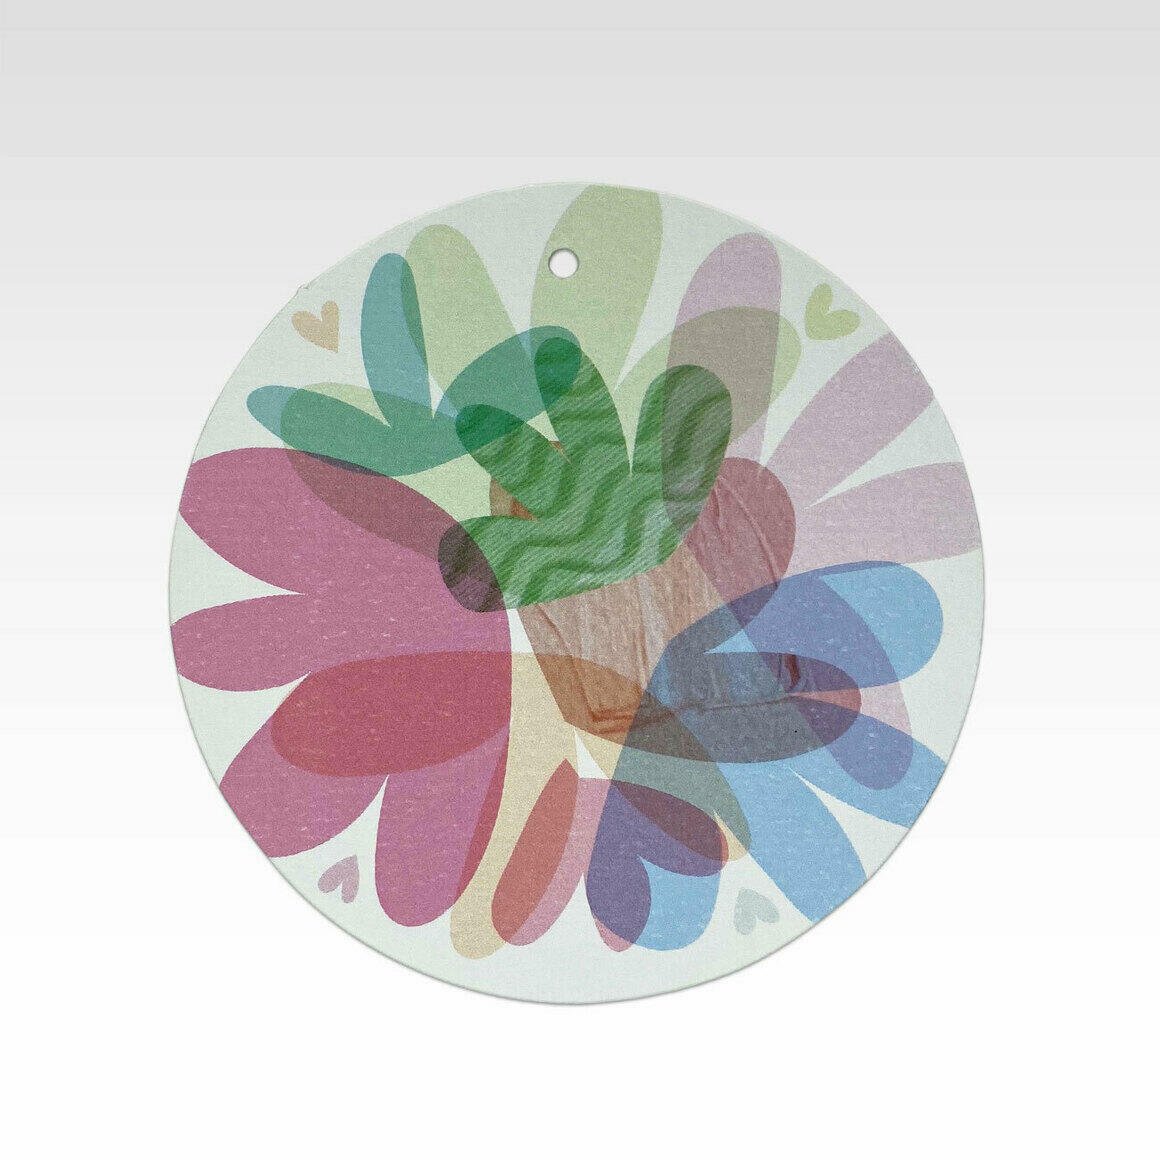 TAG077 – Quirky Coloured Flowers   Trada Marketplace